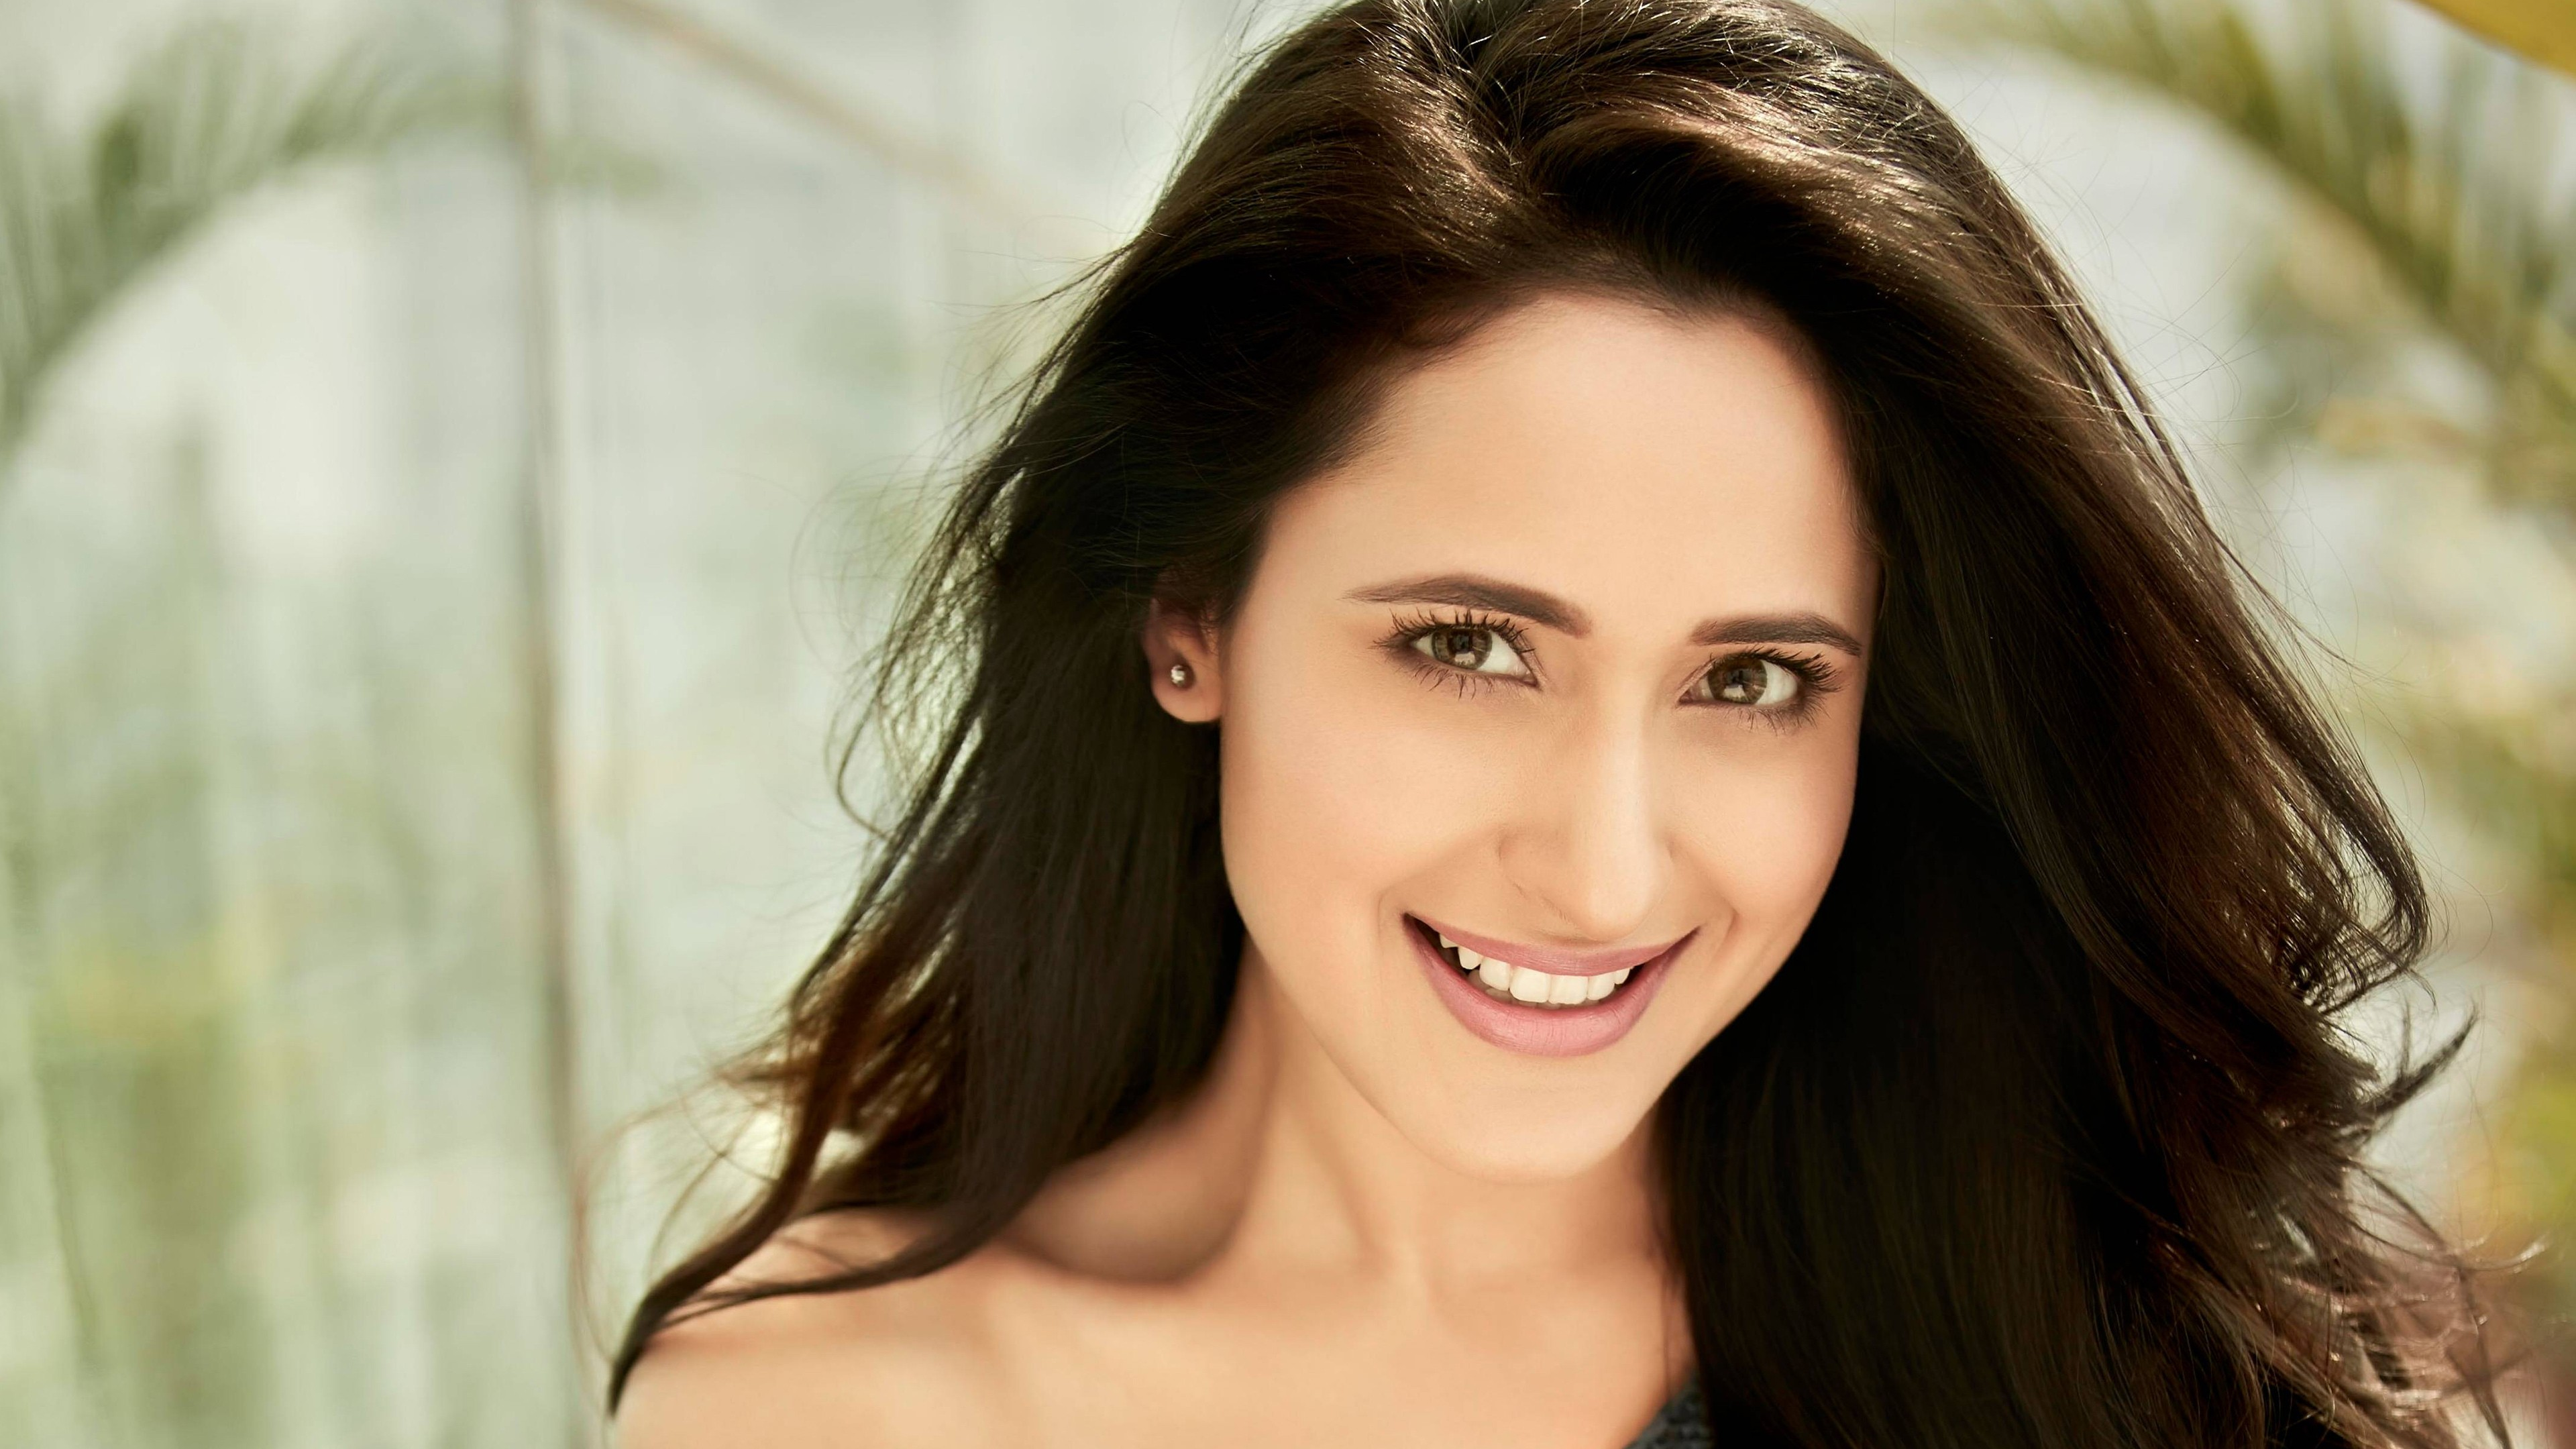 Rohit Name 3d Wallpaper Pragya Jaiswal 4k Wallpapers Hd Wallpapers Id 18586